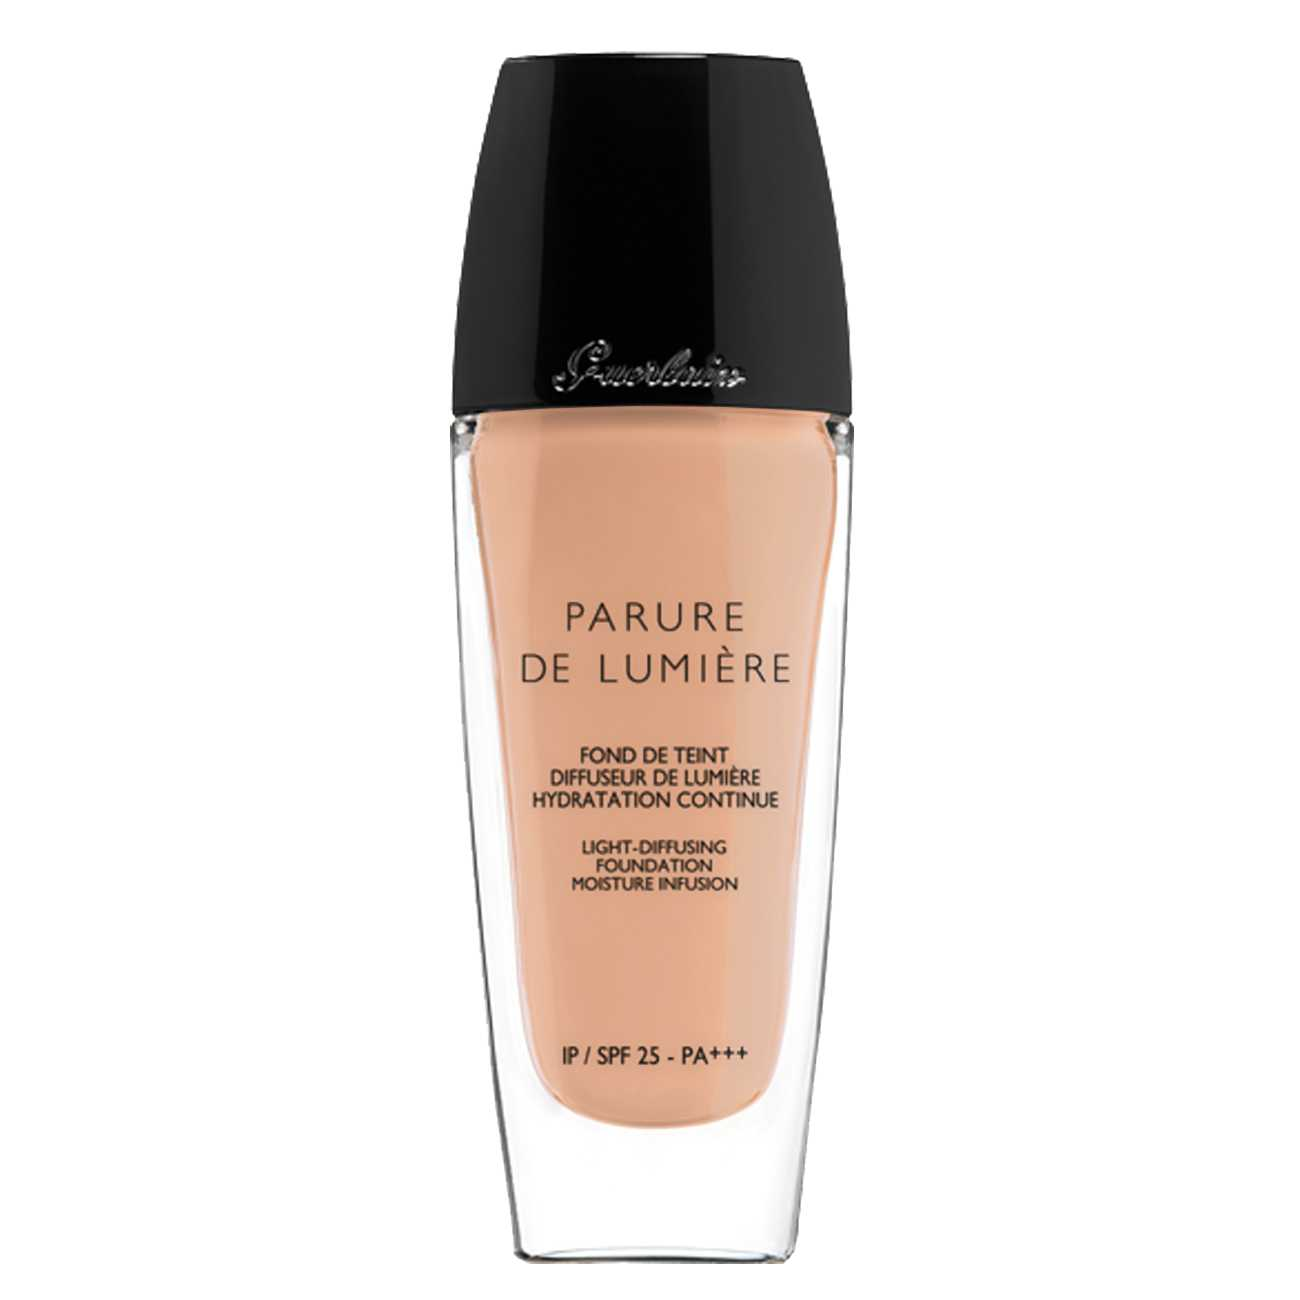 PARURE DE LUMIERE 30 ML Rose Naturel 13